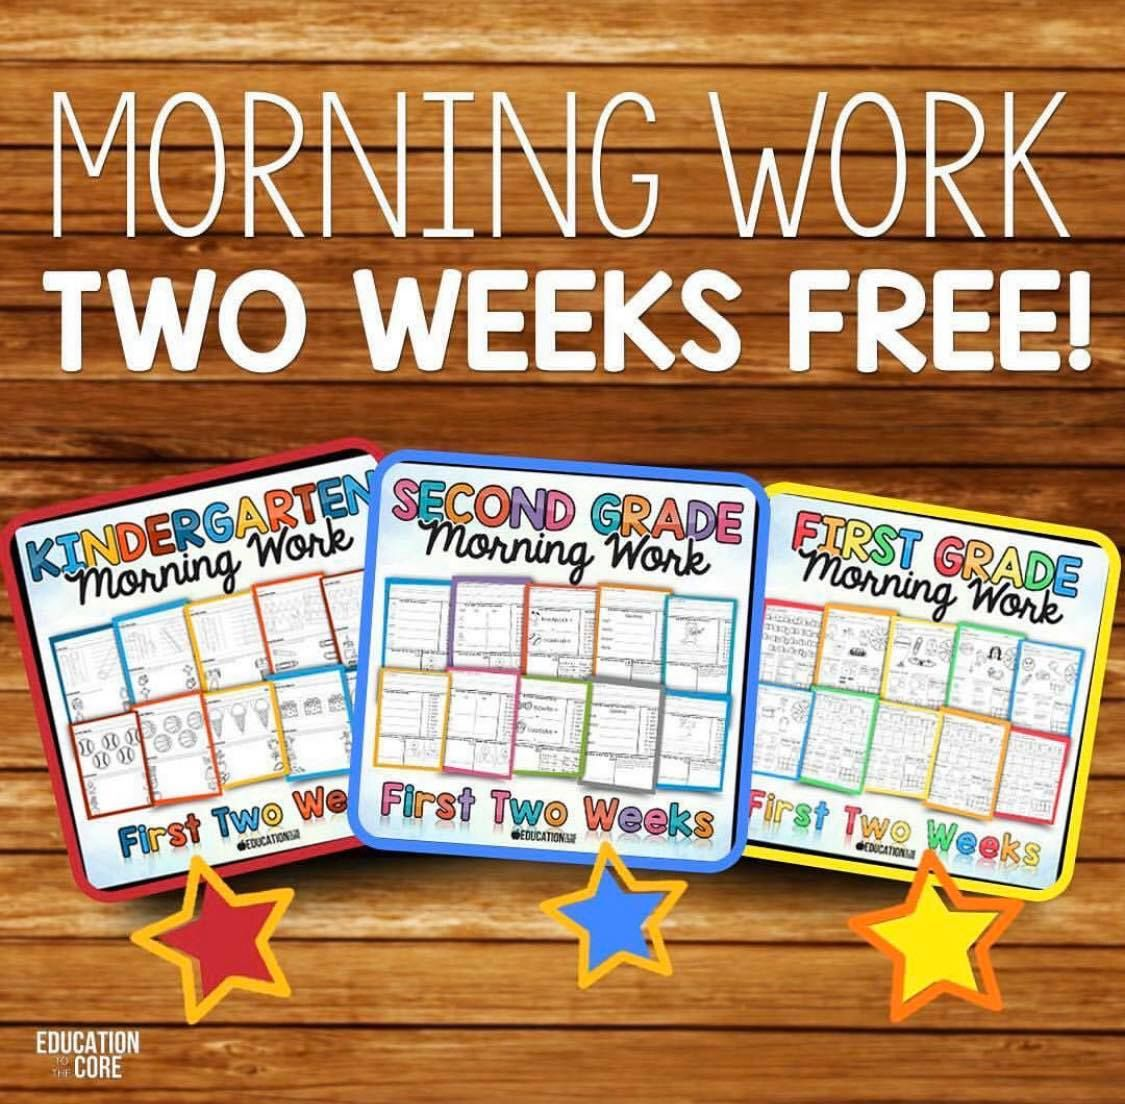 Looking For Quick Worksheets Your Child Can Do While At